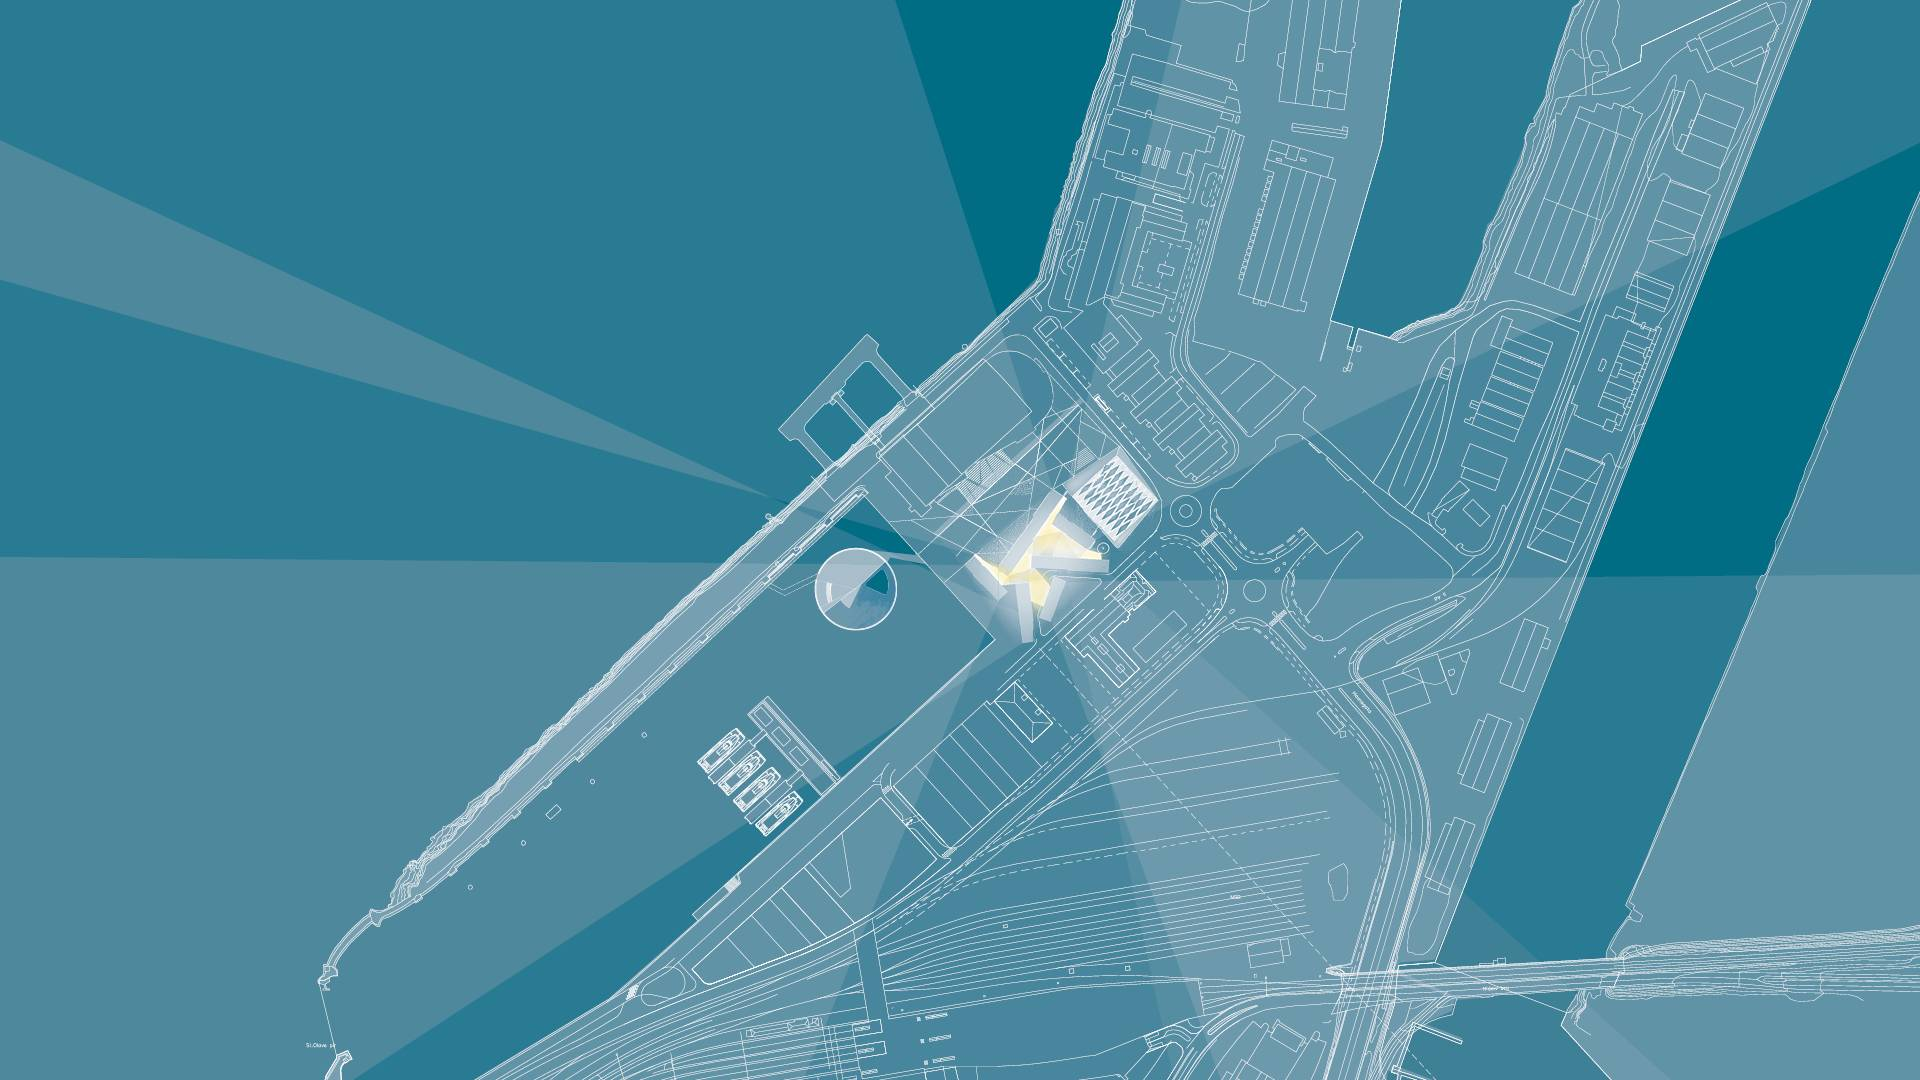 SITE PLAN - Clarion Hotel & Congress - SPOL Architects